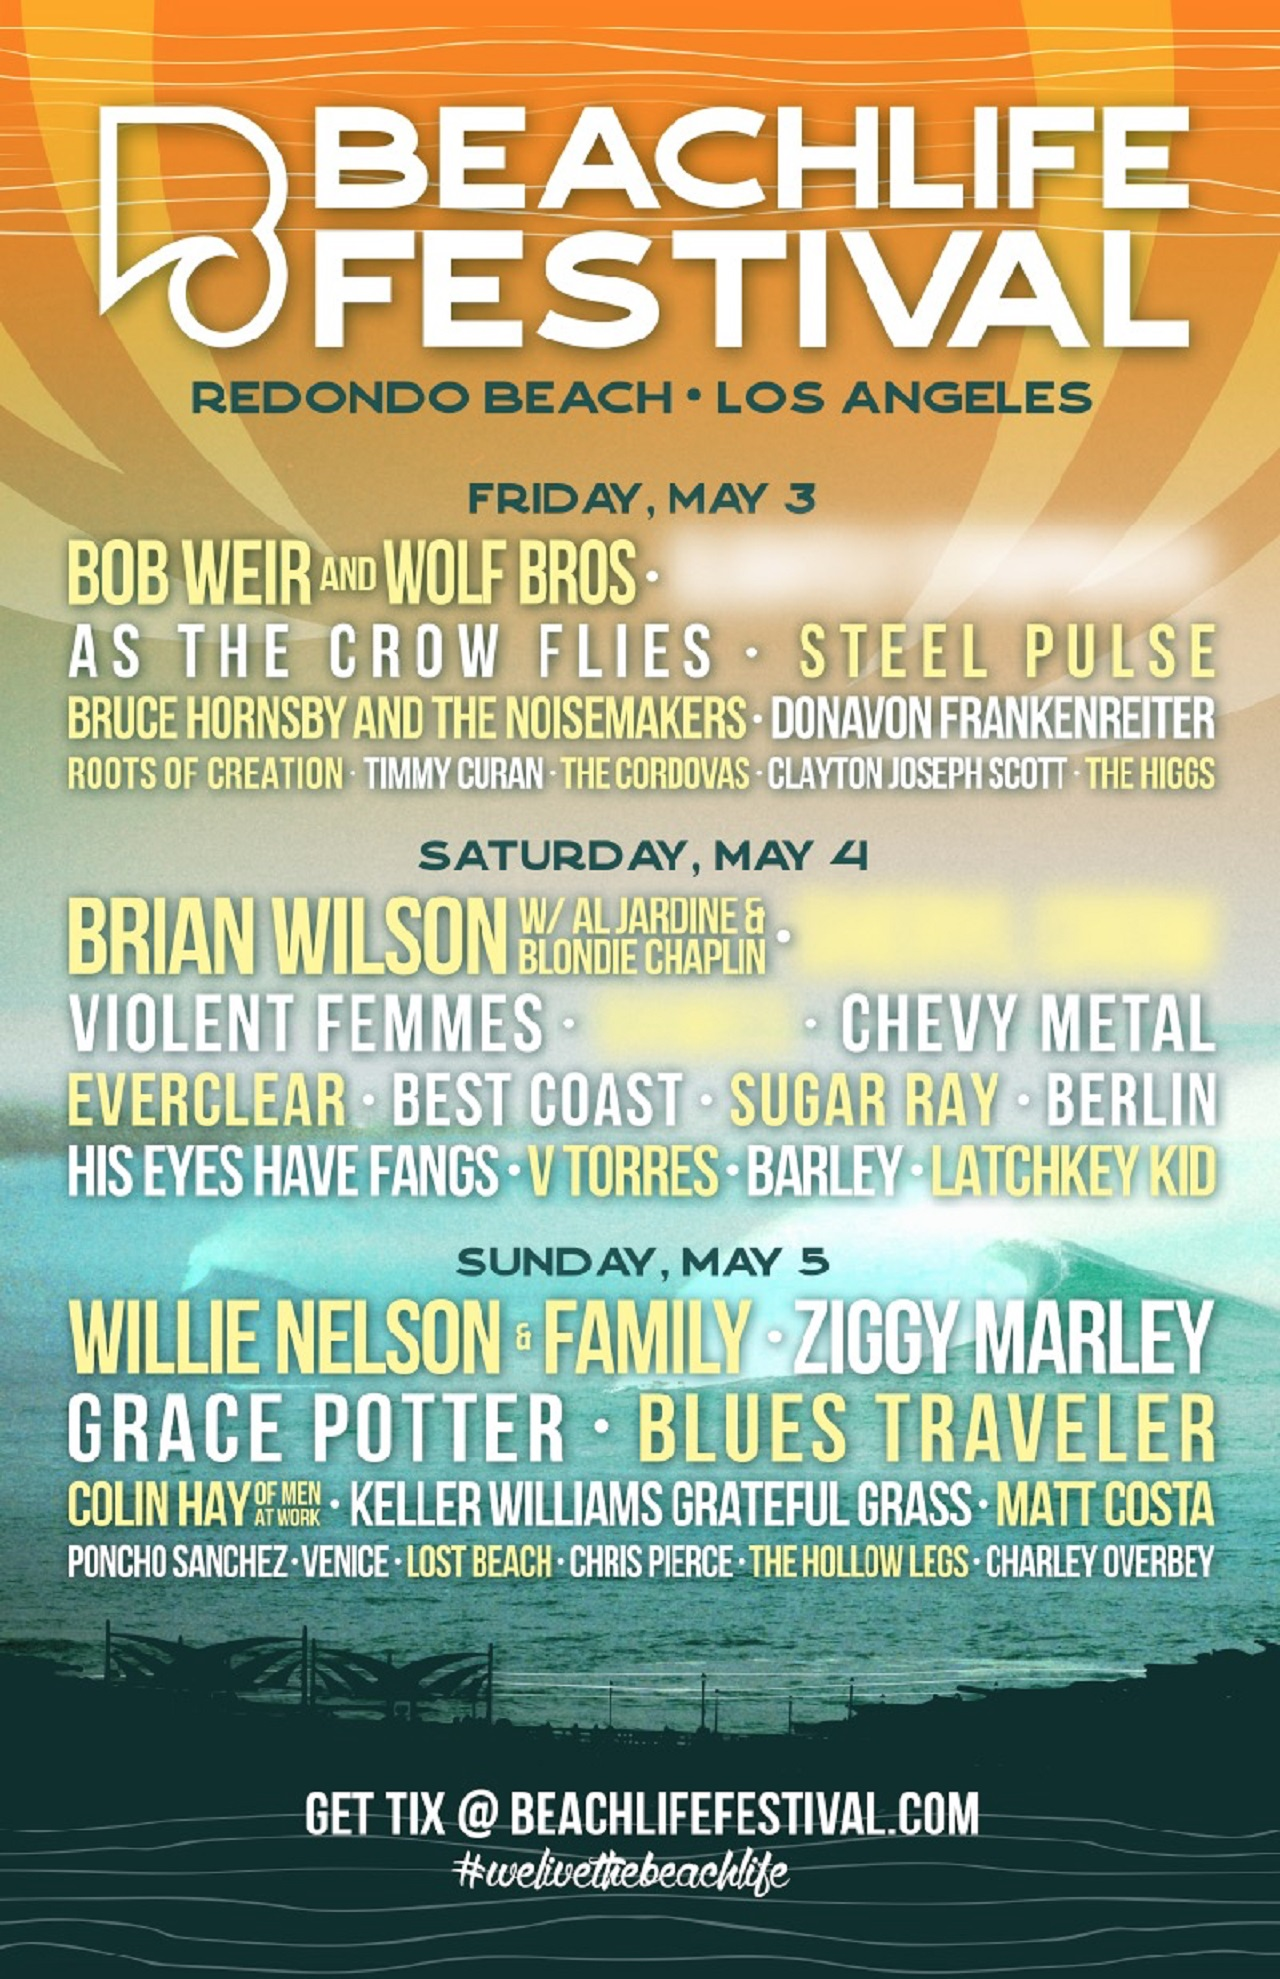 LA's BeachLife Festival Lineup Inclues Bob Weir, Willie Nelson, Brian Wilson + Many More